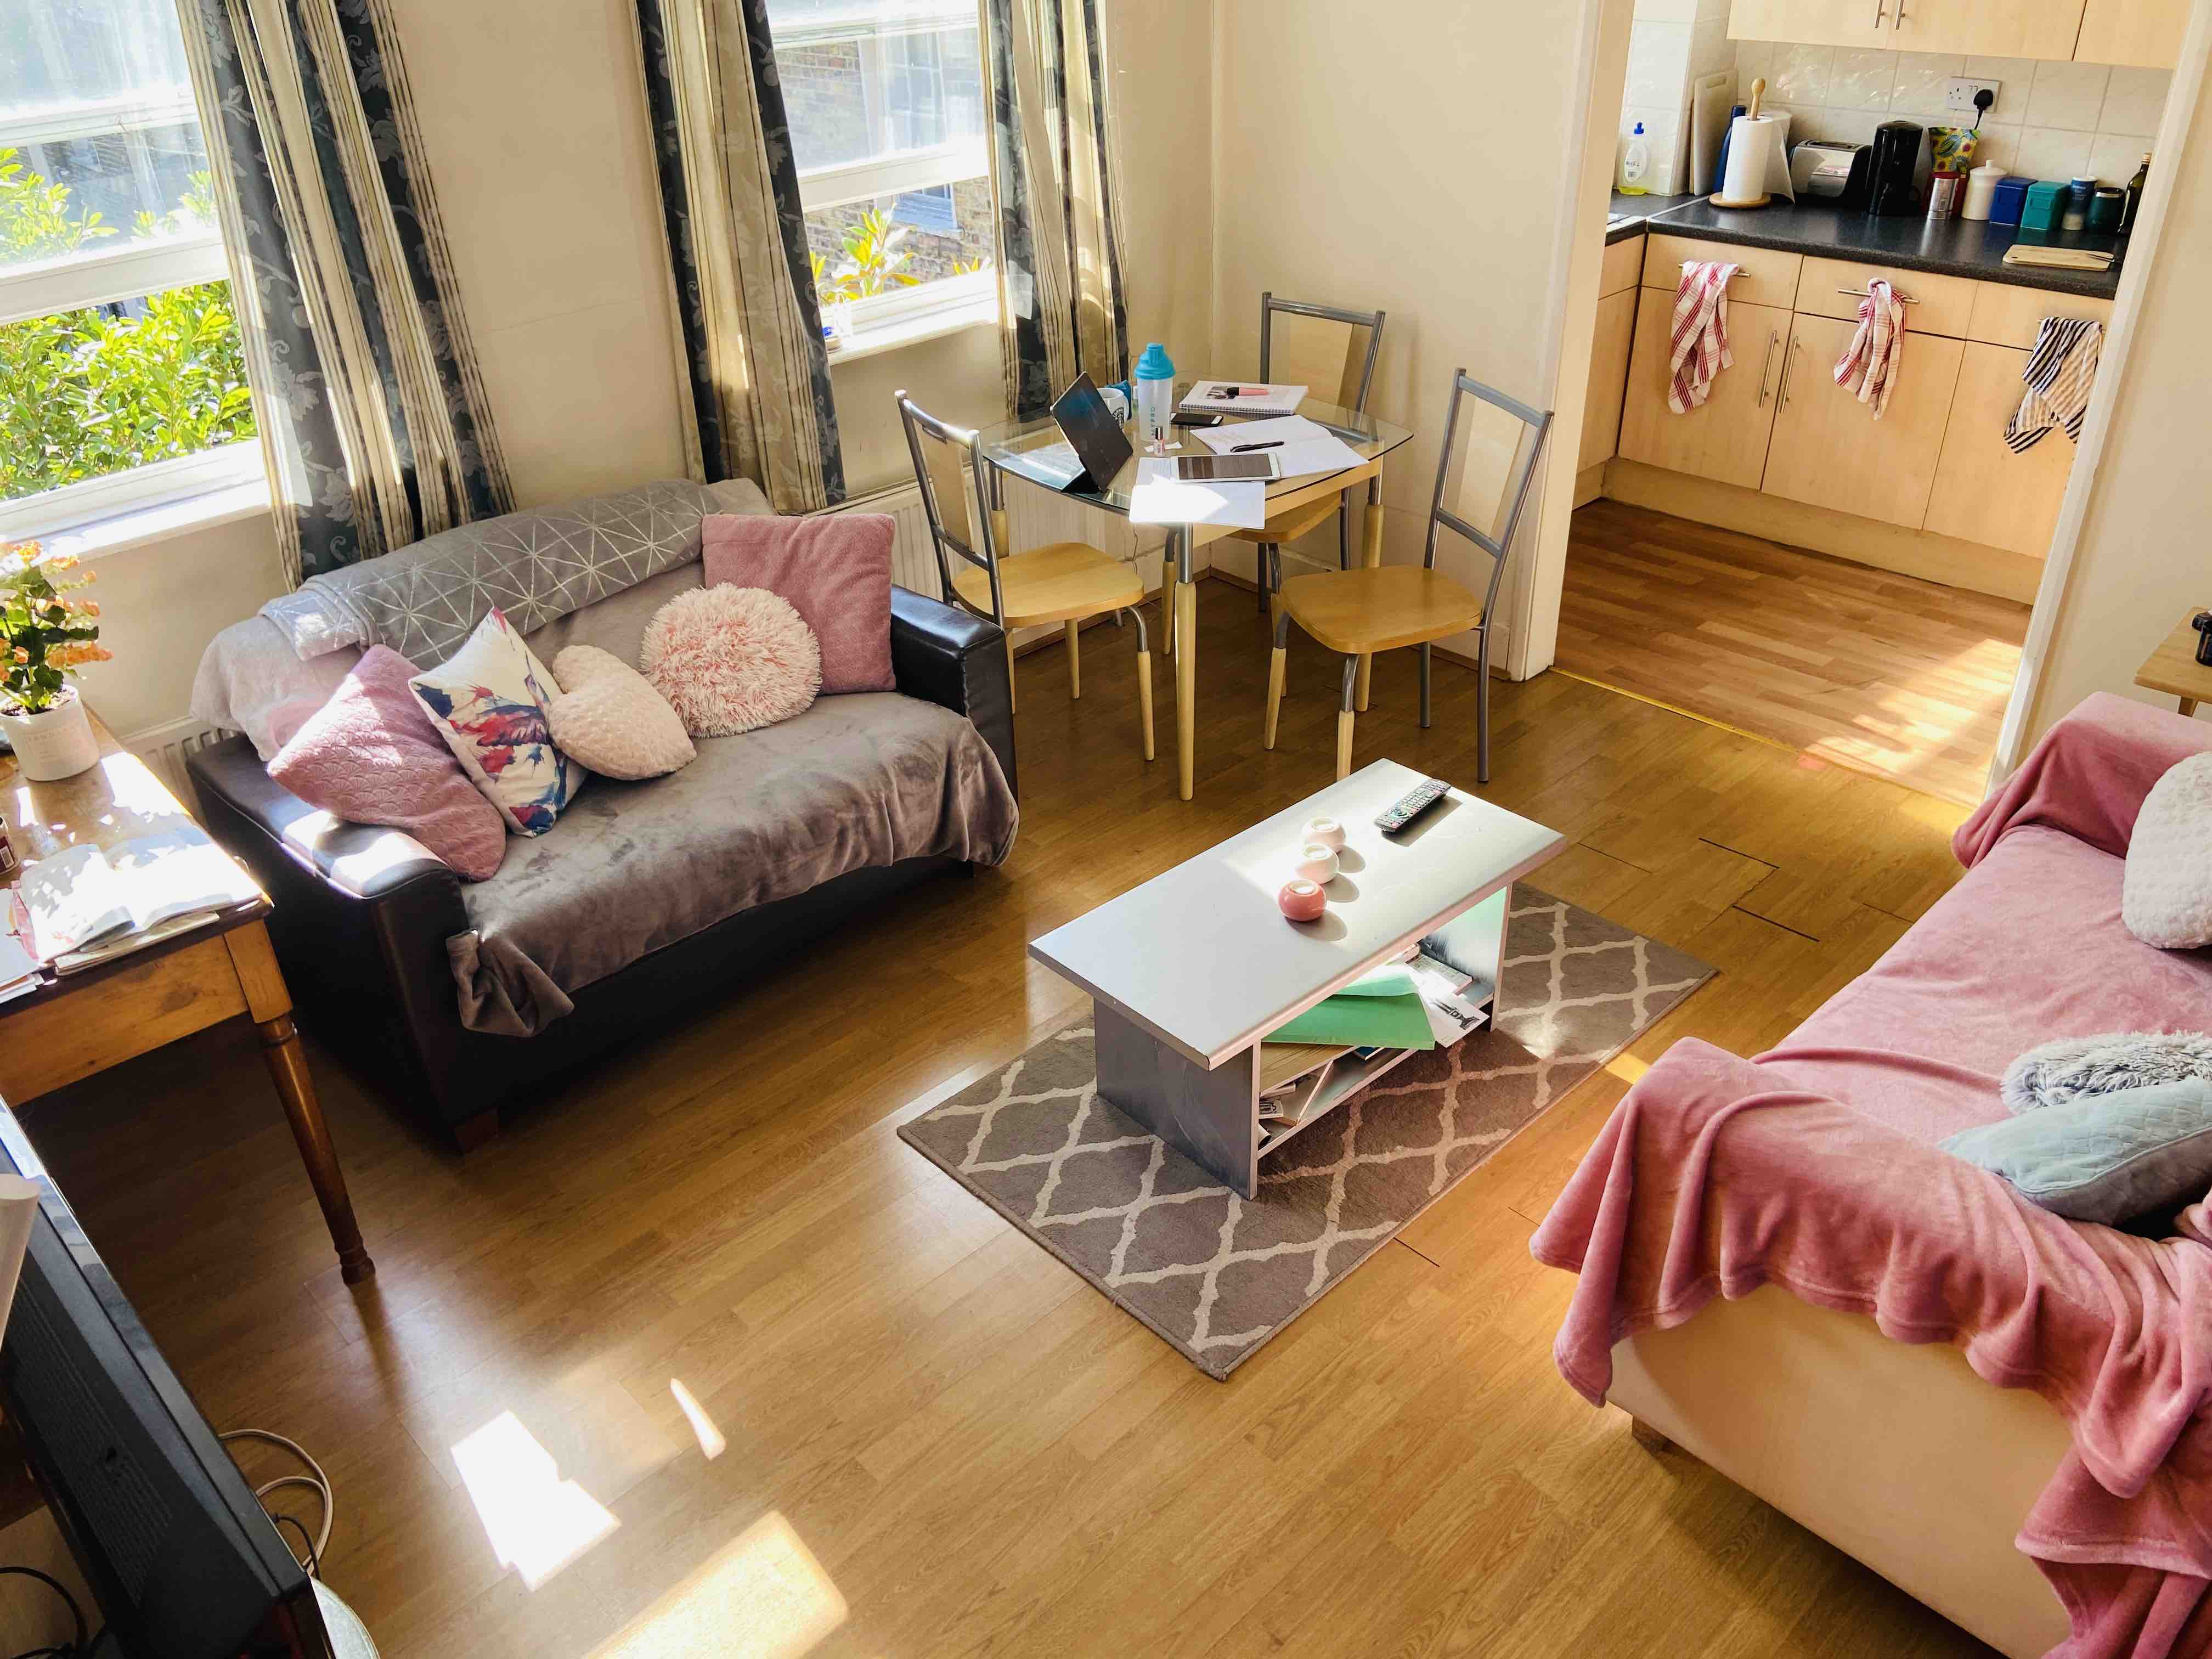 1 room in King's Cross, London, WC1X 9LX RoomsLocal image